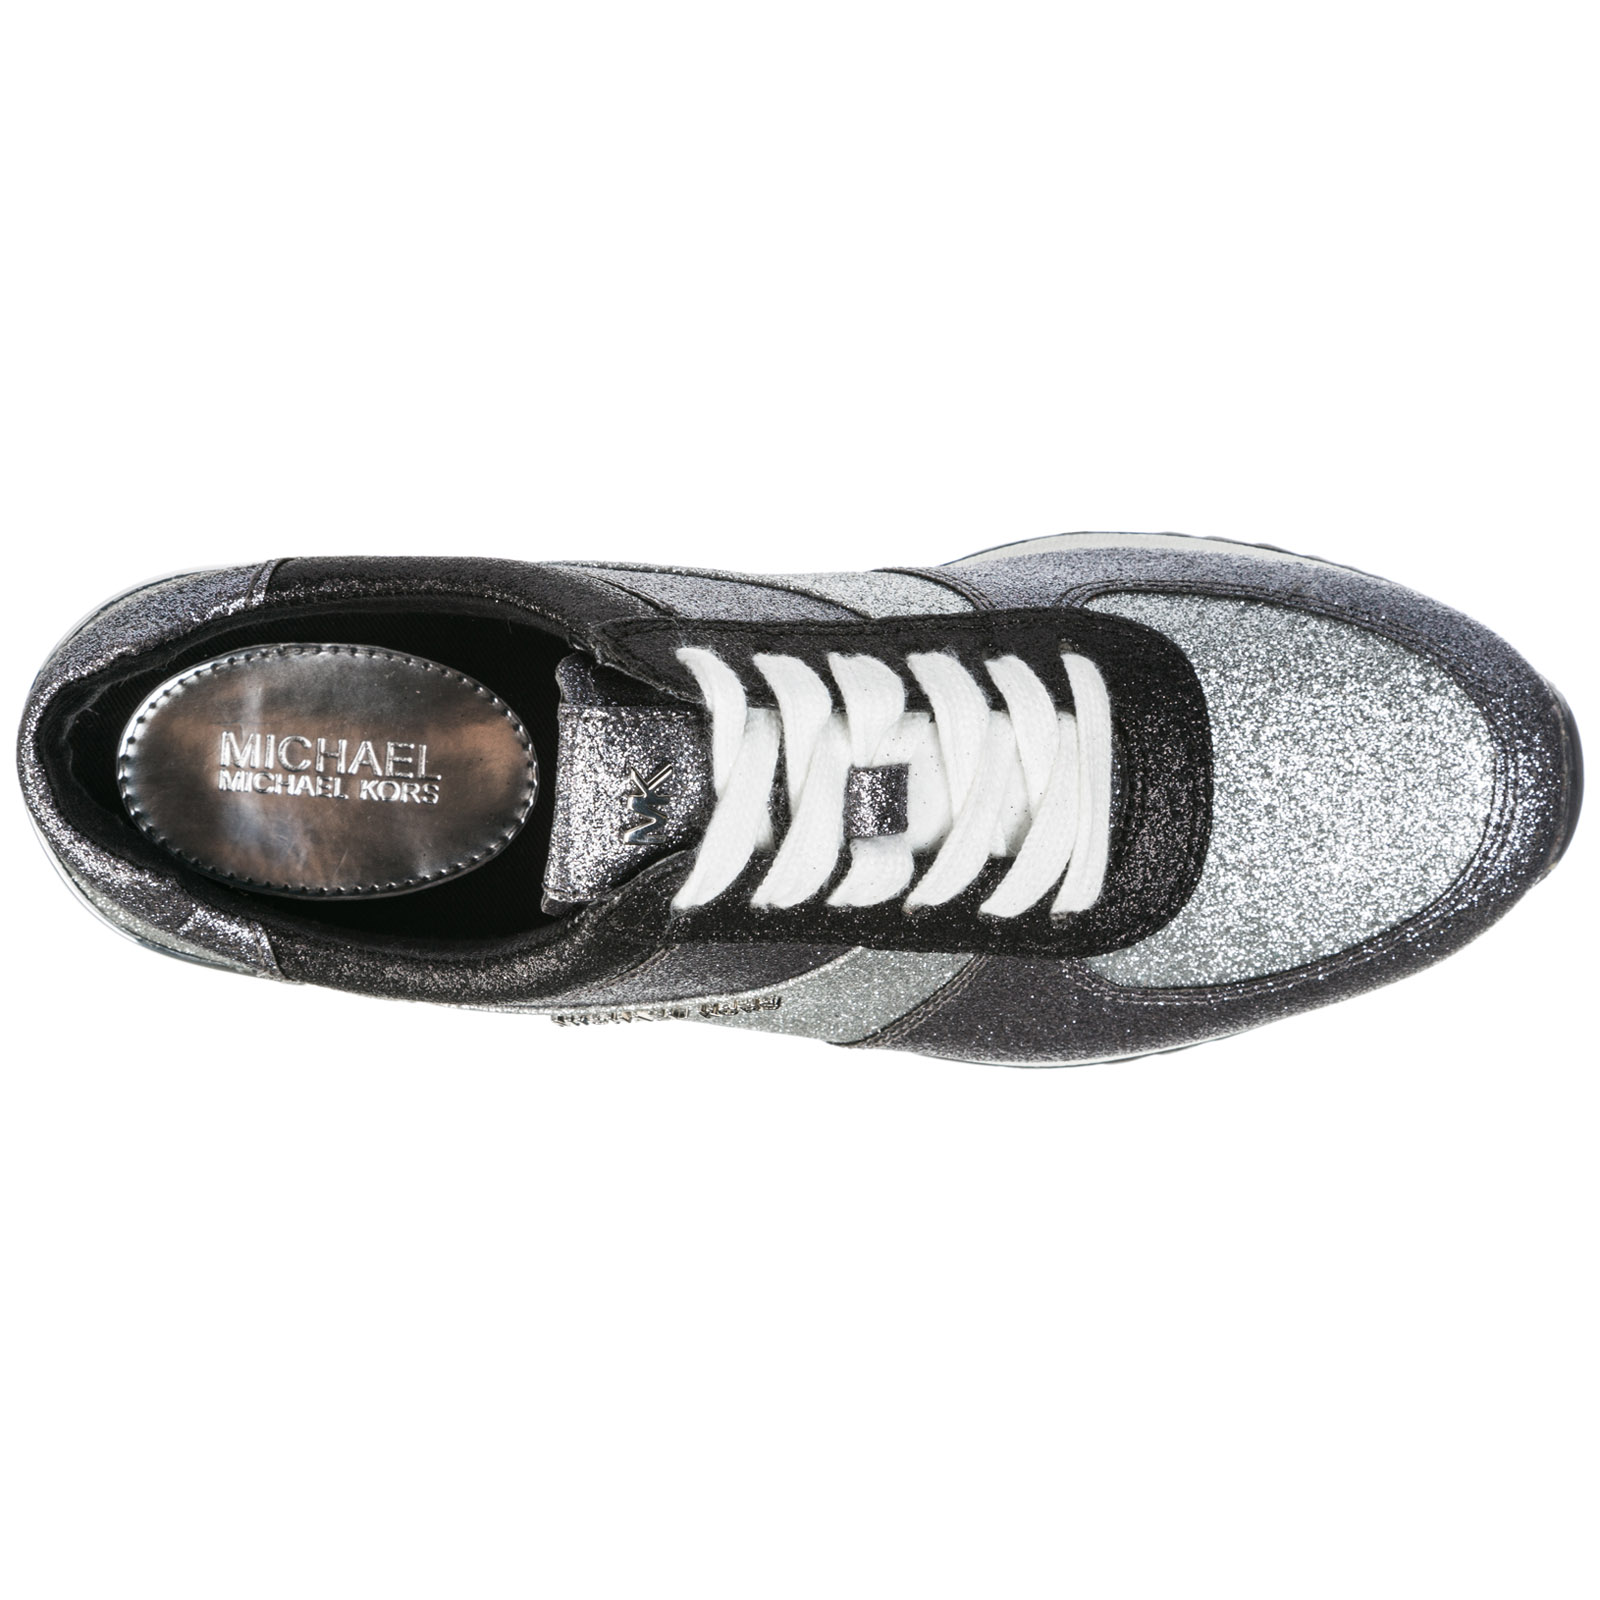 Women's shoes leather trainers sneakers allie